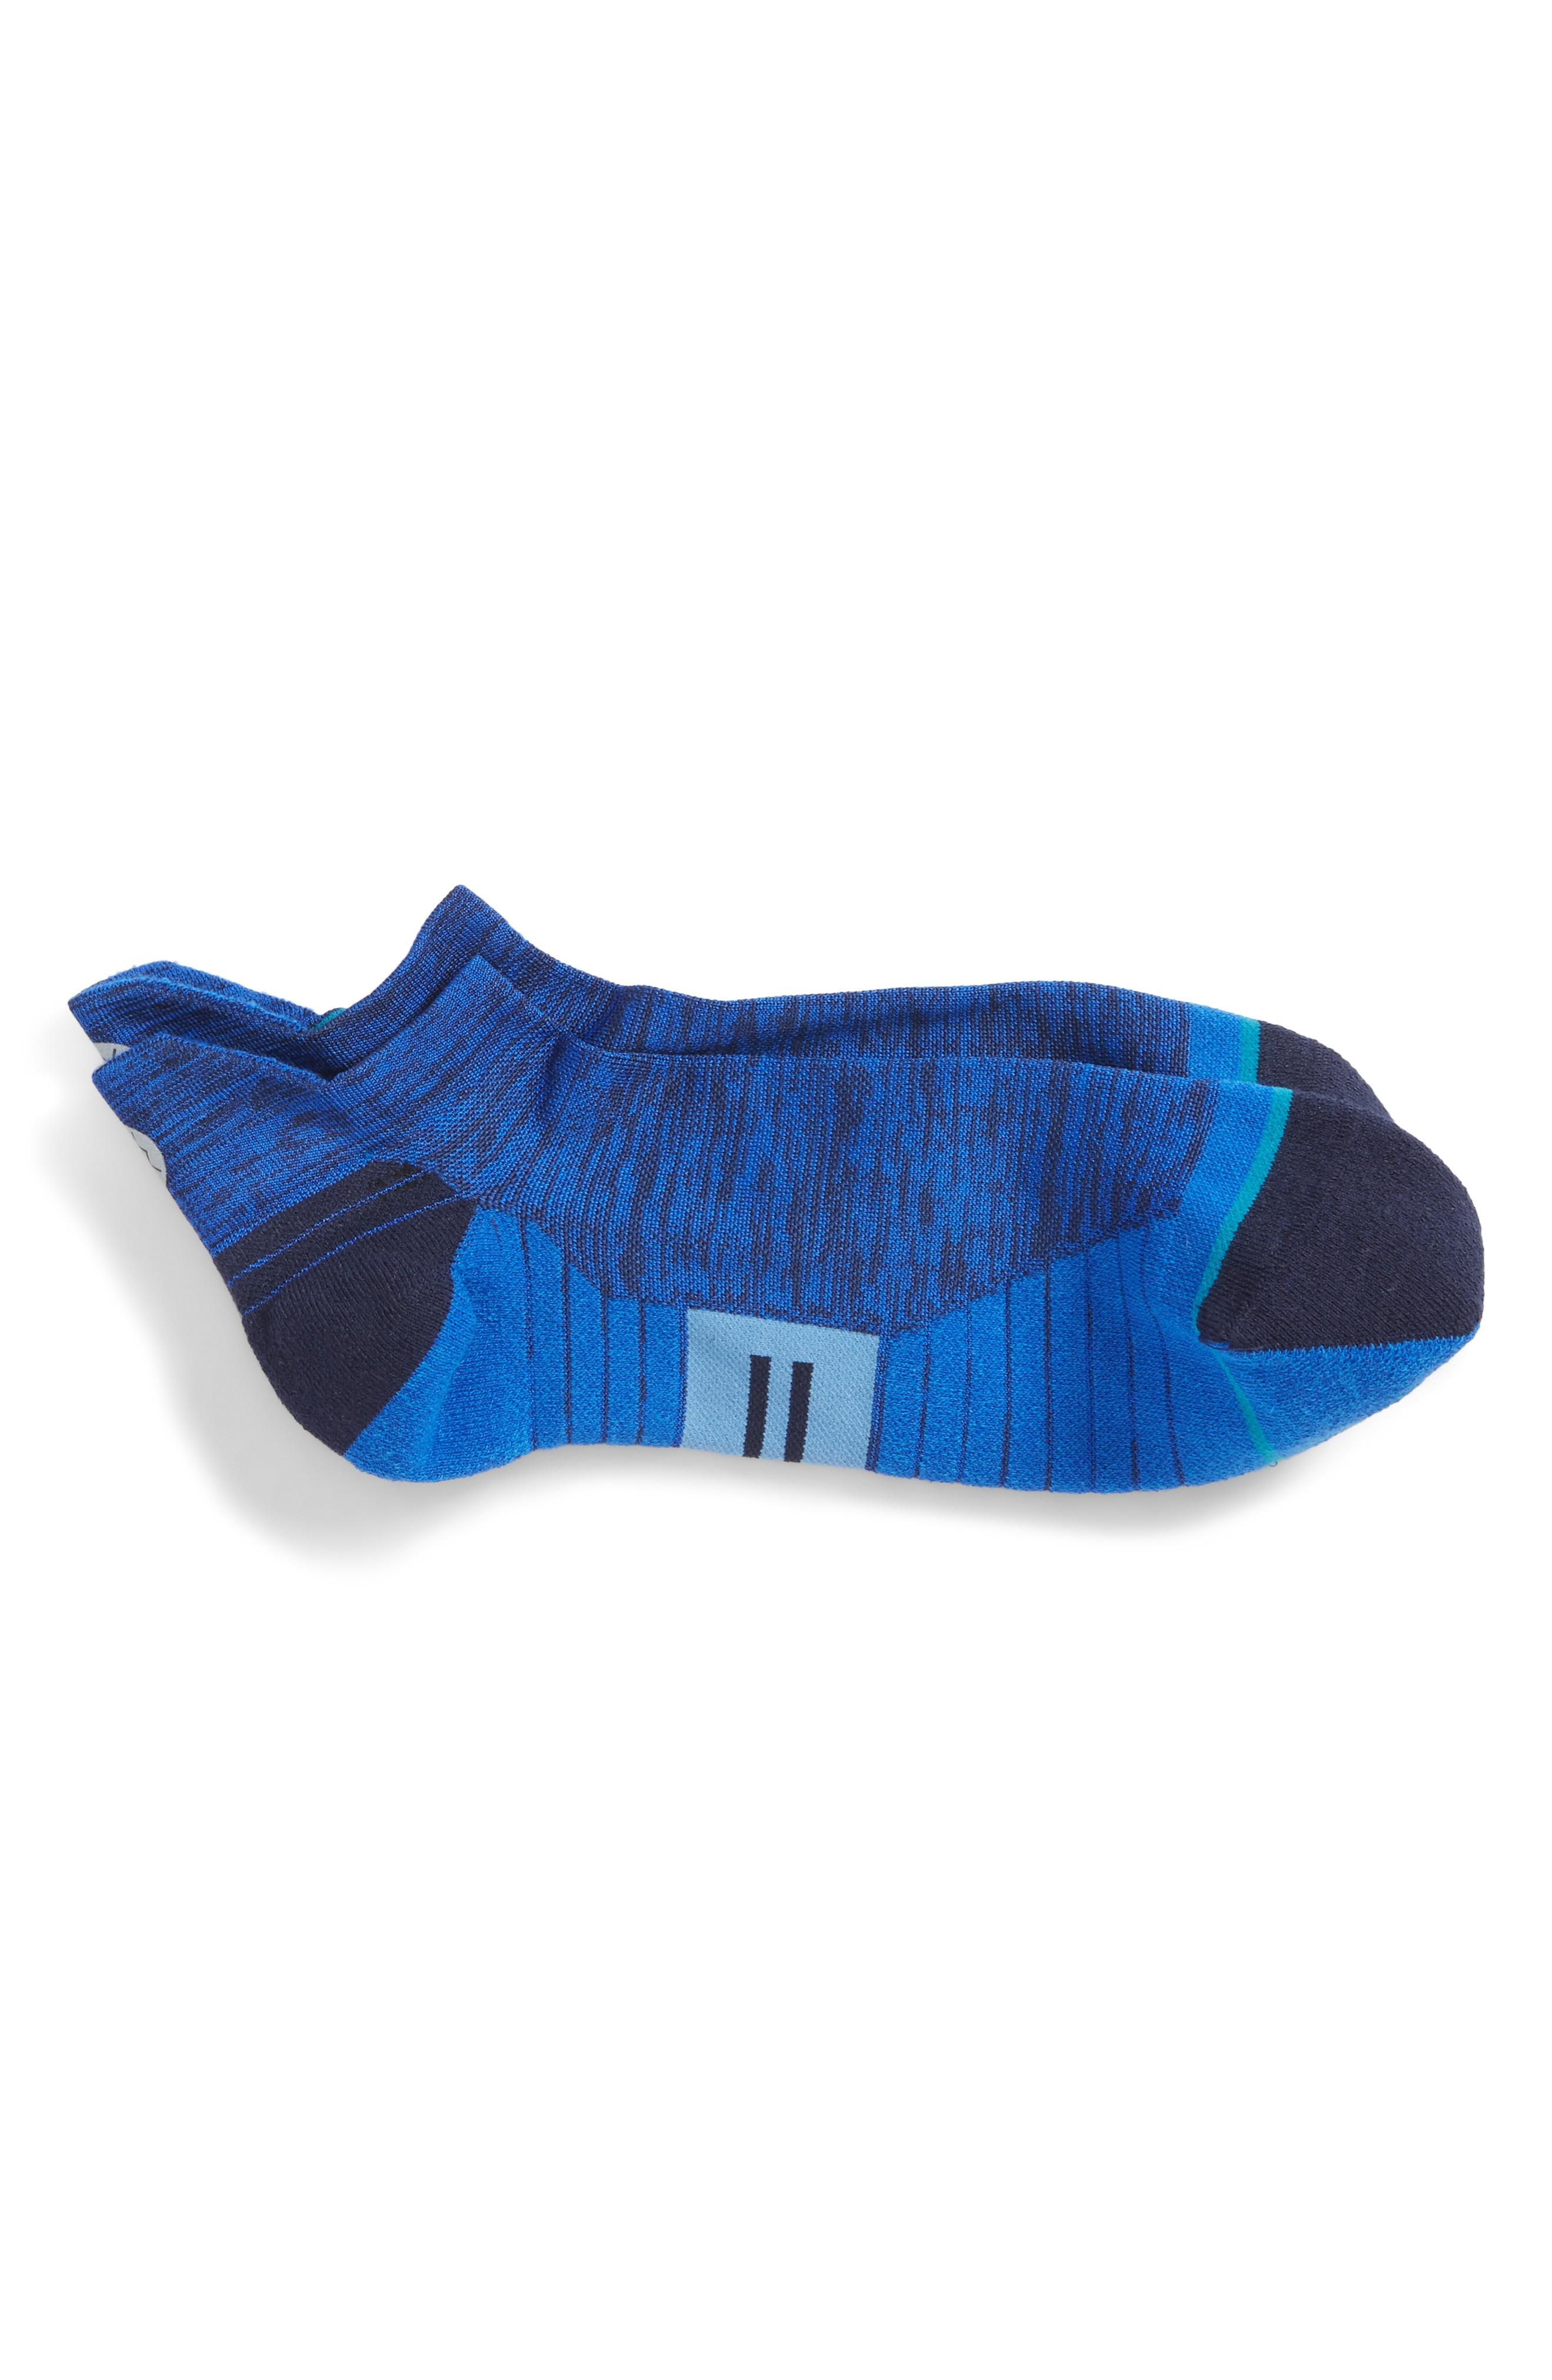 Stance Uncommon Solids Tab No-show Socks In Royal